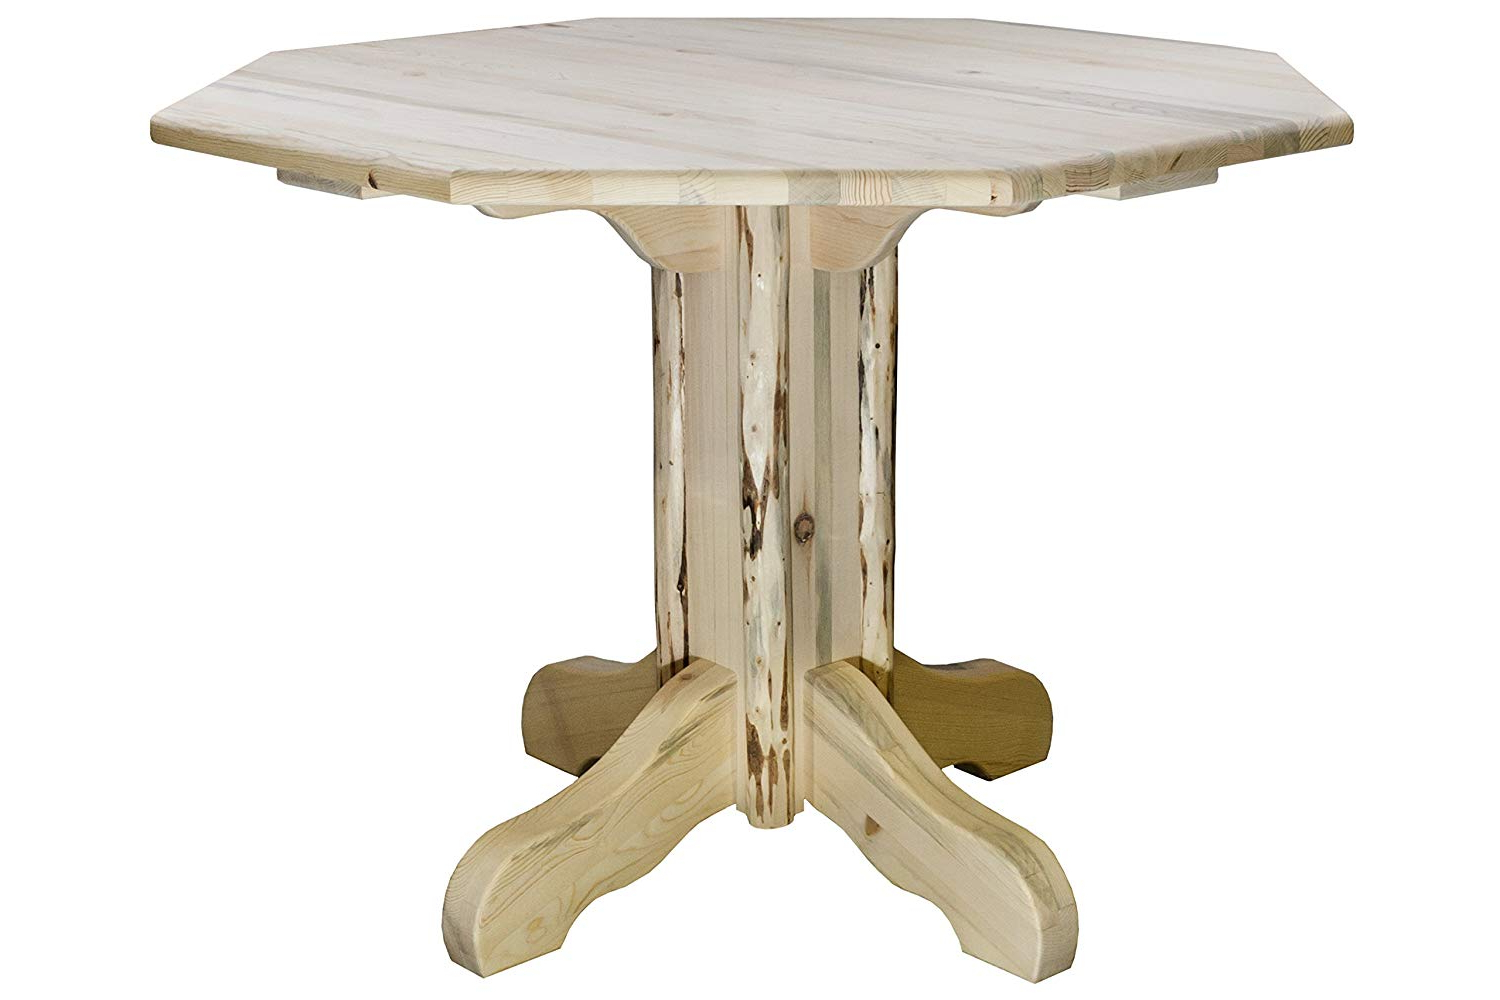 Newest Aztec Round Pedestal Dining Tables Throughout Amazon: Montana Woodworks Mwpt Octagonal Montana (View 11 of 25)